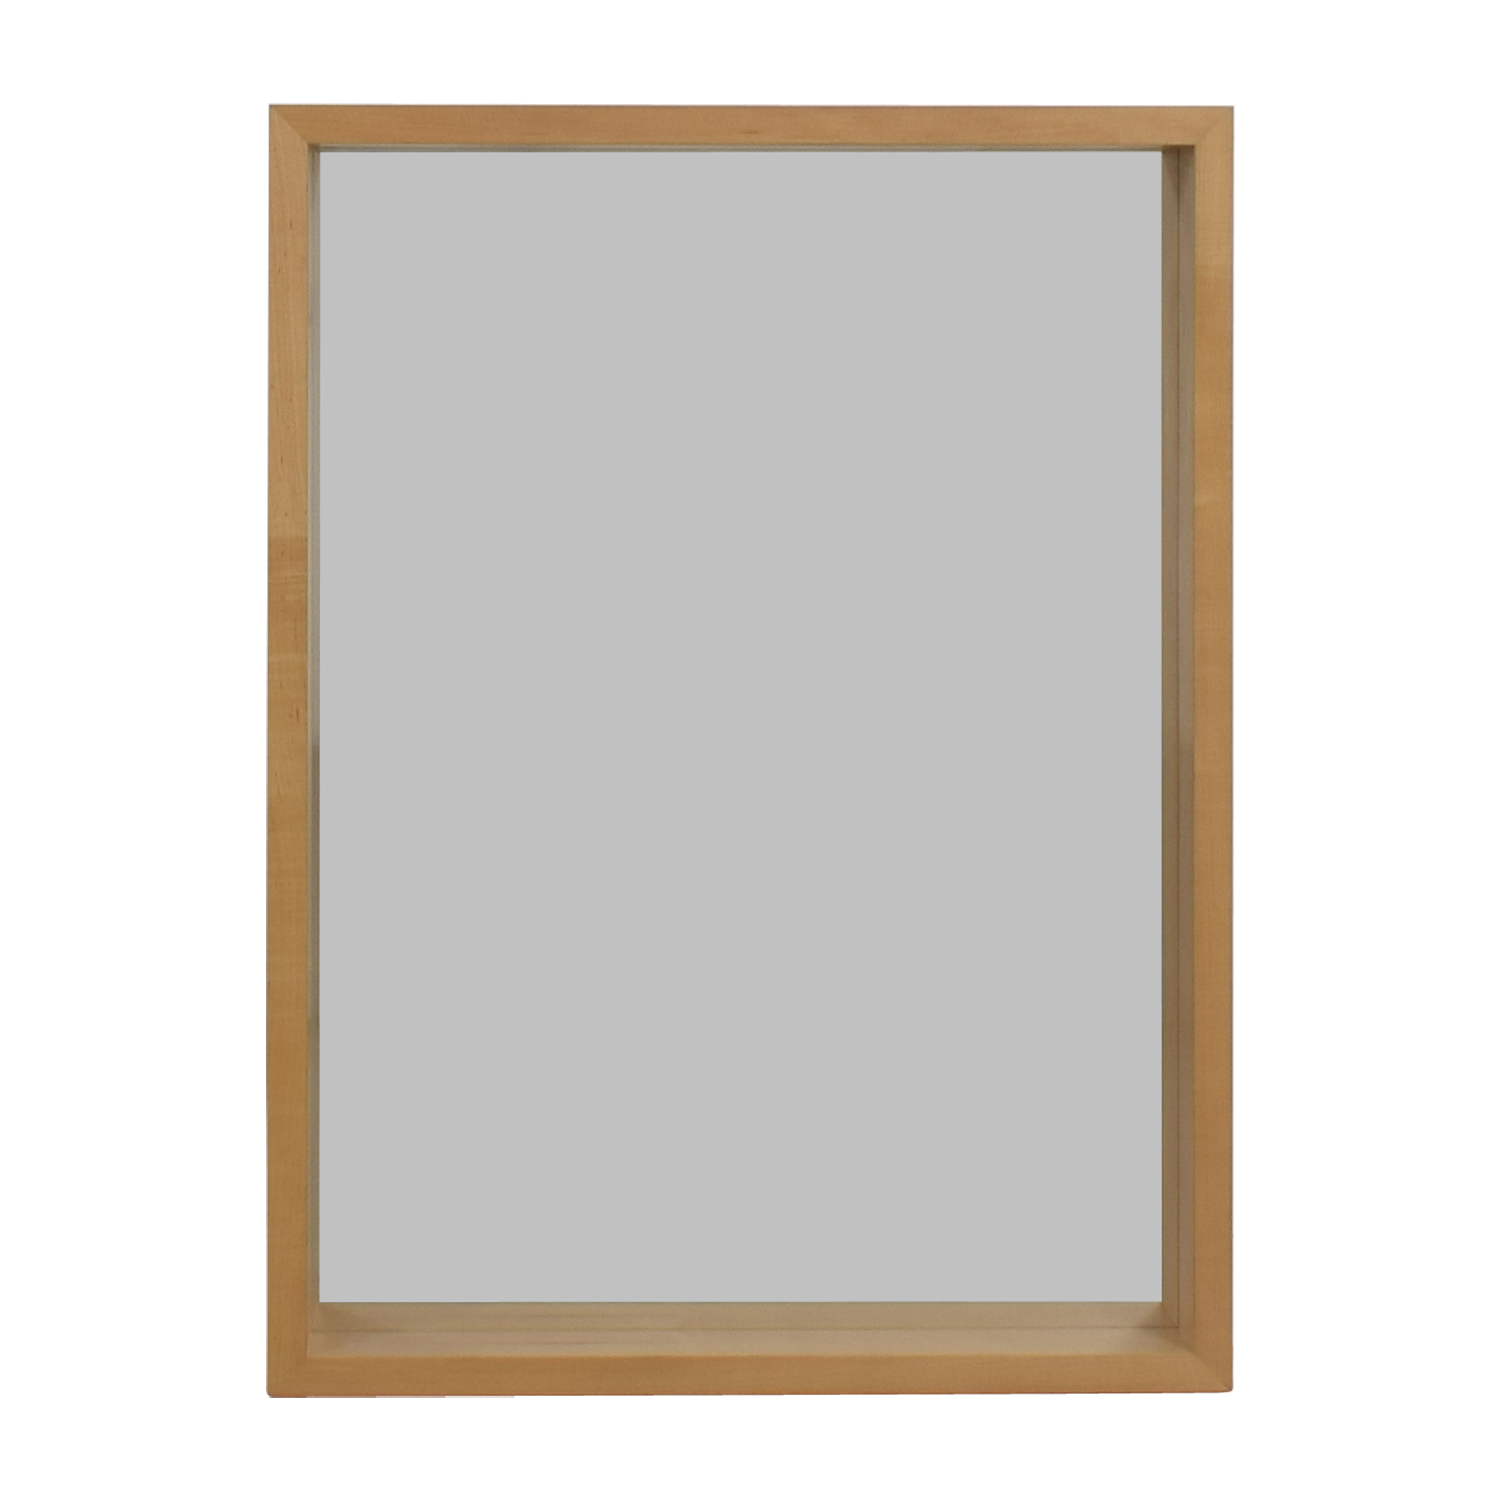 Room & Board Room & Board Natural Loft Wall Mirror coupon